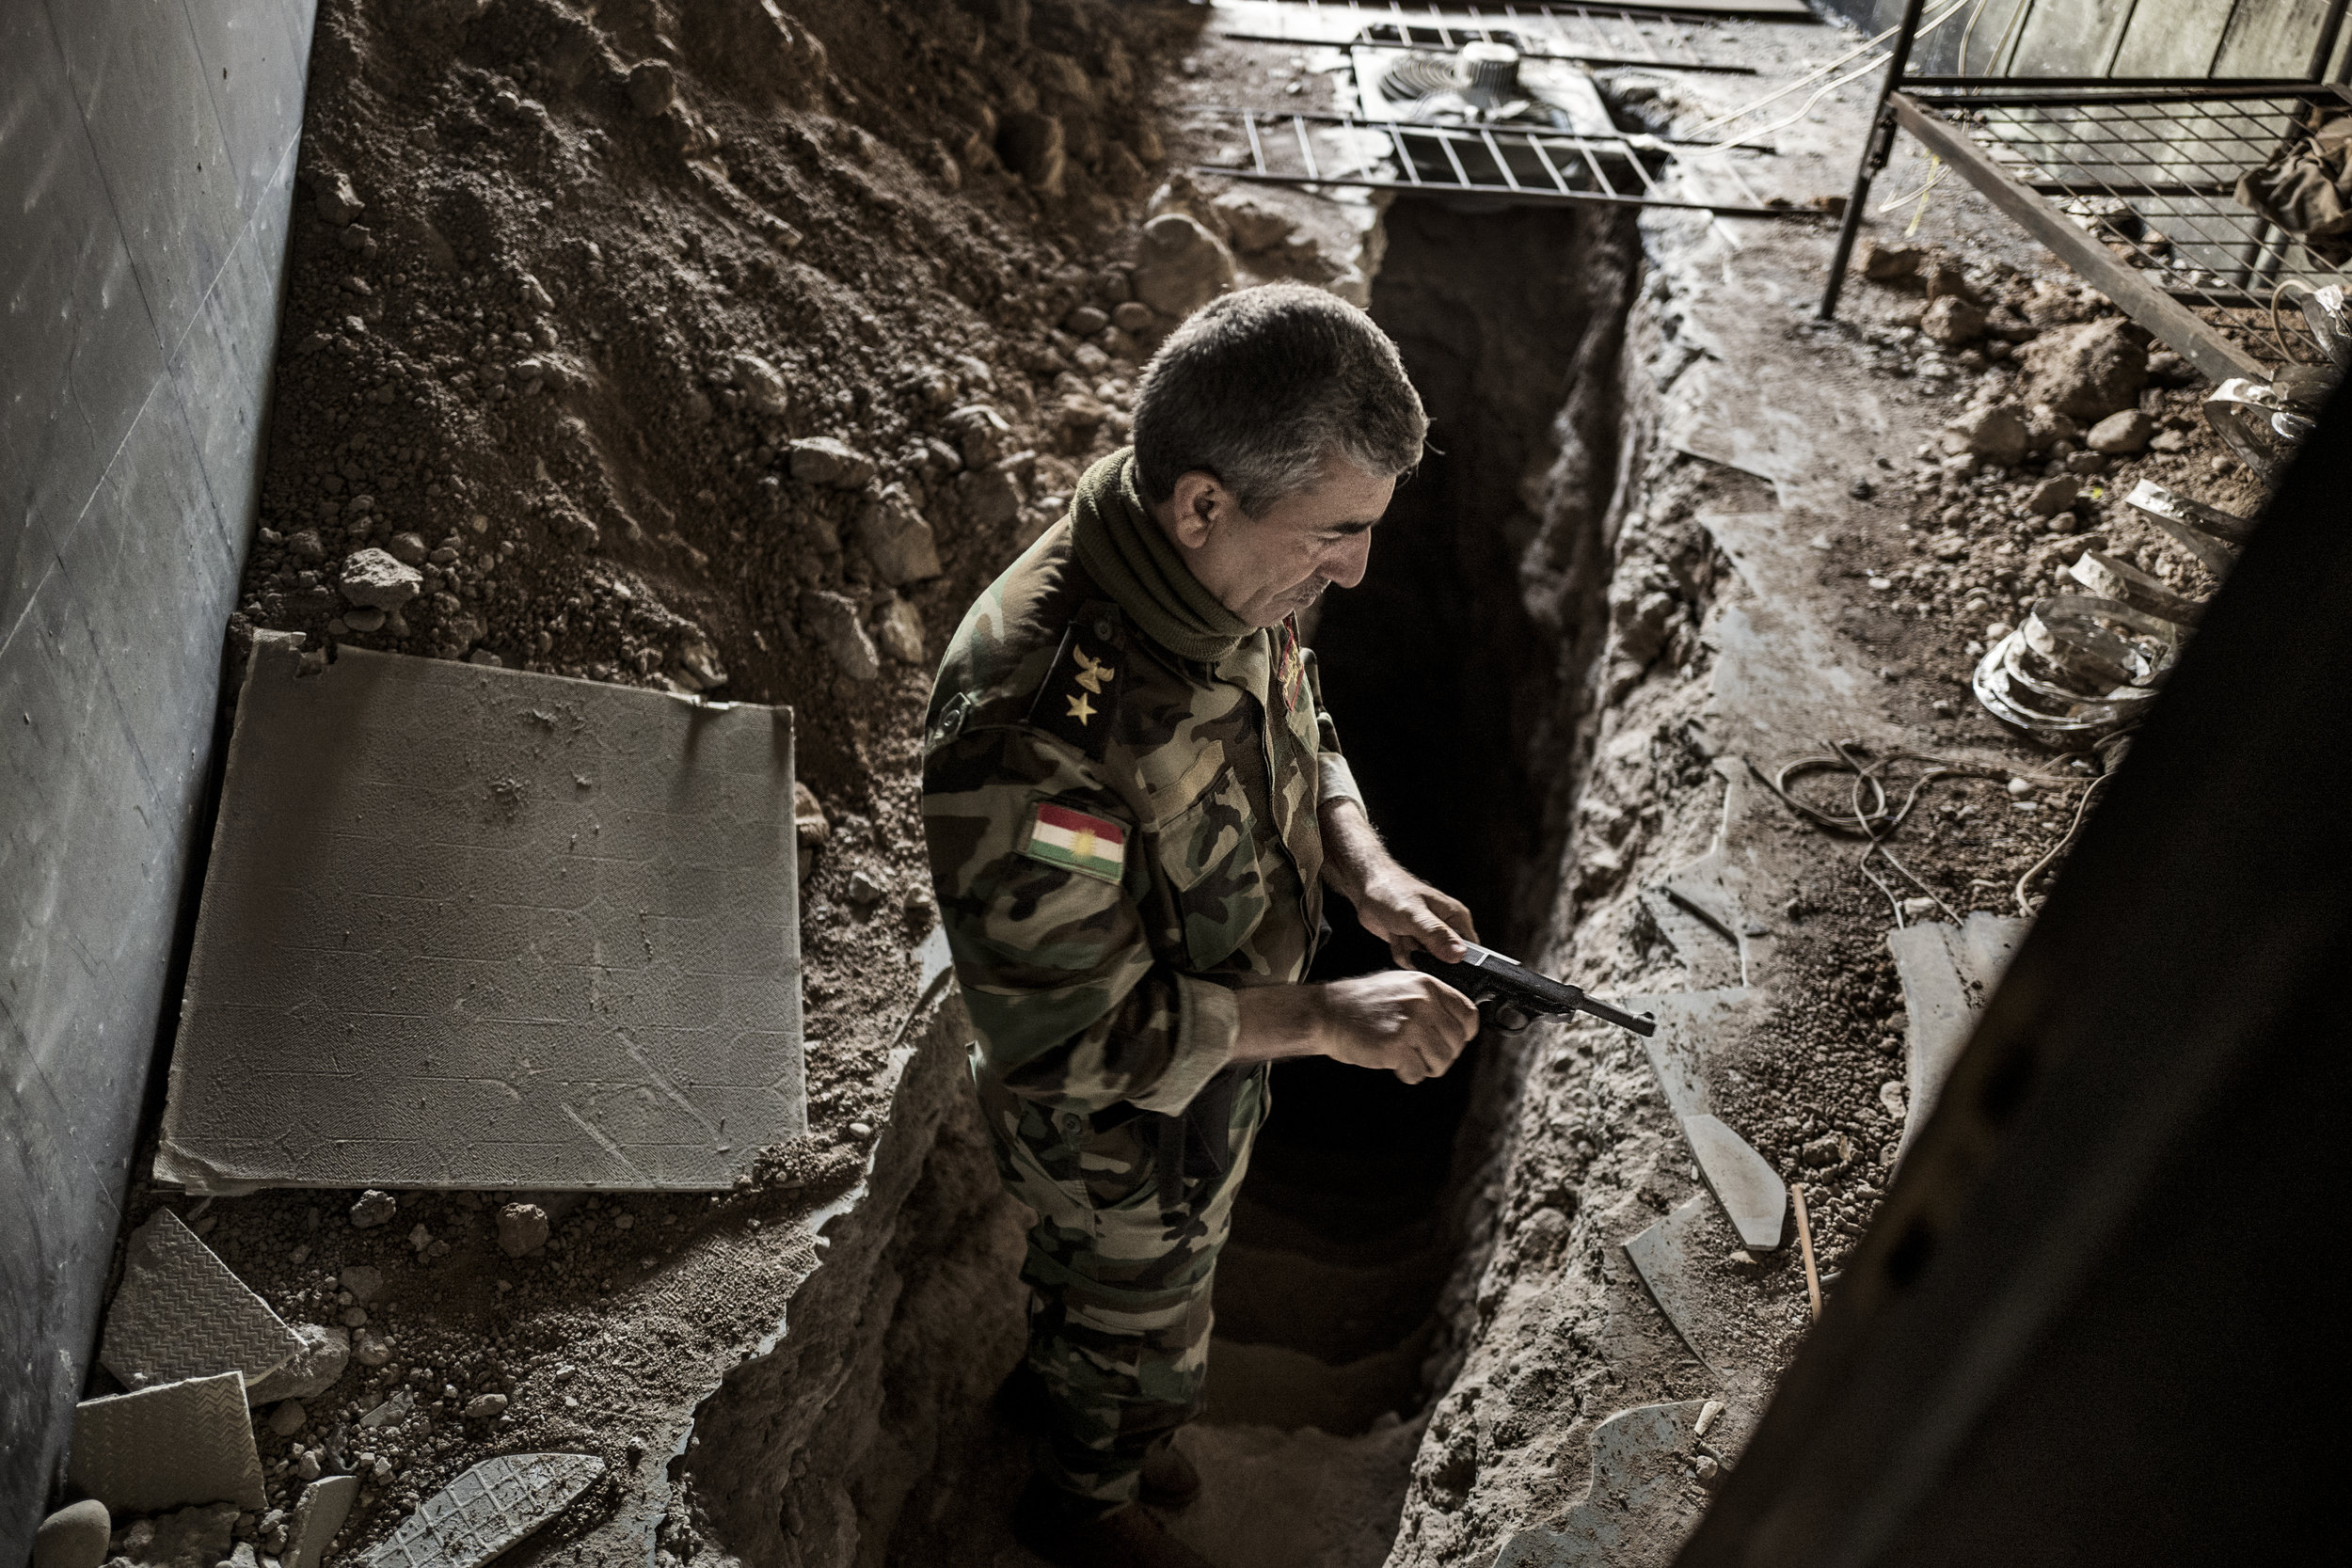 Lieutenant Colonel Mahmood Zkrie from the Kurdish forces readies his gun before heading into one of the ISIS tunnels in the city of Baashiqa 14 km from Mosul. 'You never know, what you run into down there', he says. ISIS dug several tunnels under the streets and houses to get from one part of the town to the other without exposing them selves to coalition fire. Mahmood Zkrie estimates, that this tunnel has taken two months to complete. It's equipped with tv-monitors, so ISIS could monitor the coalition troops on the streets above.